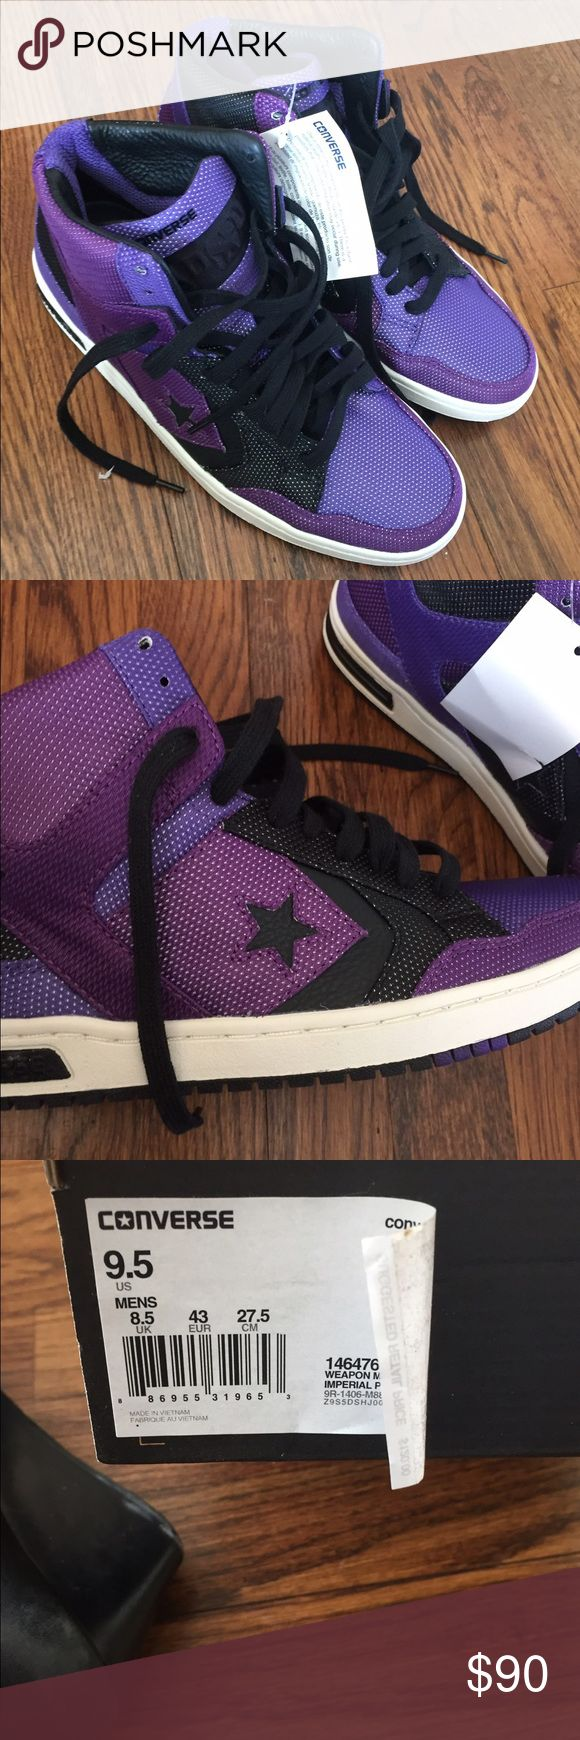 Men's Converse Weapon Sneakers Mid-Imperial purple Brand new, Men's Converse Weapon Sneakers Mid-Imperial purple. Size 9 new with box. Converse Shoes Sneakers